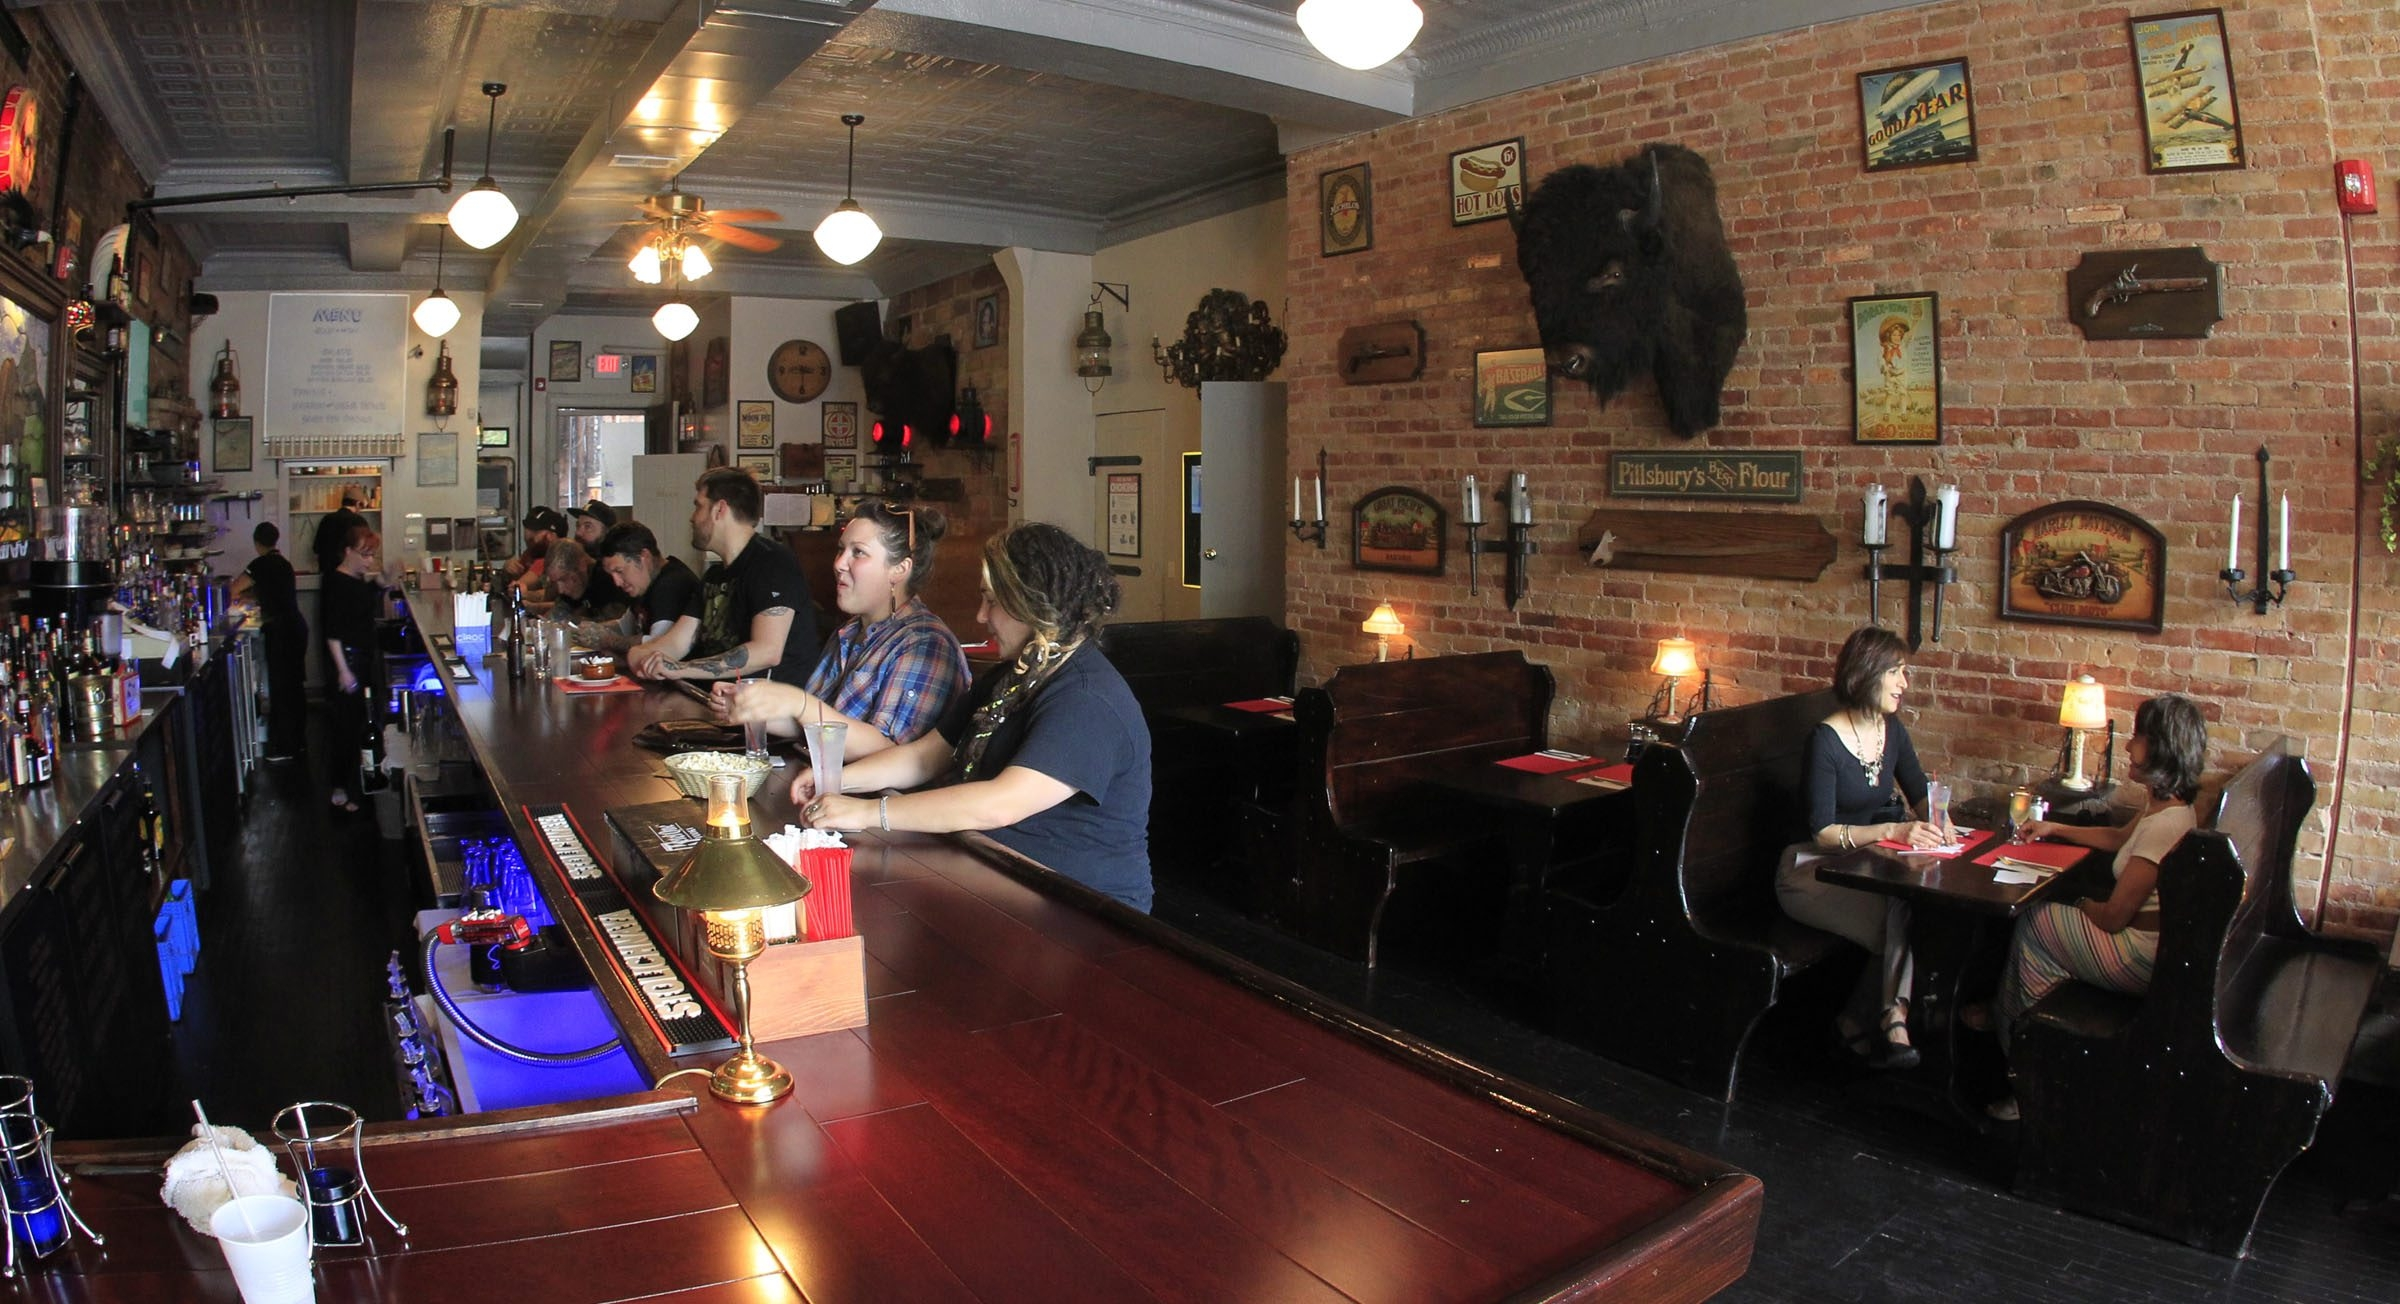 The Alley Cat has a distinct low-key ambience.